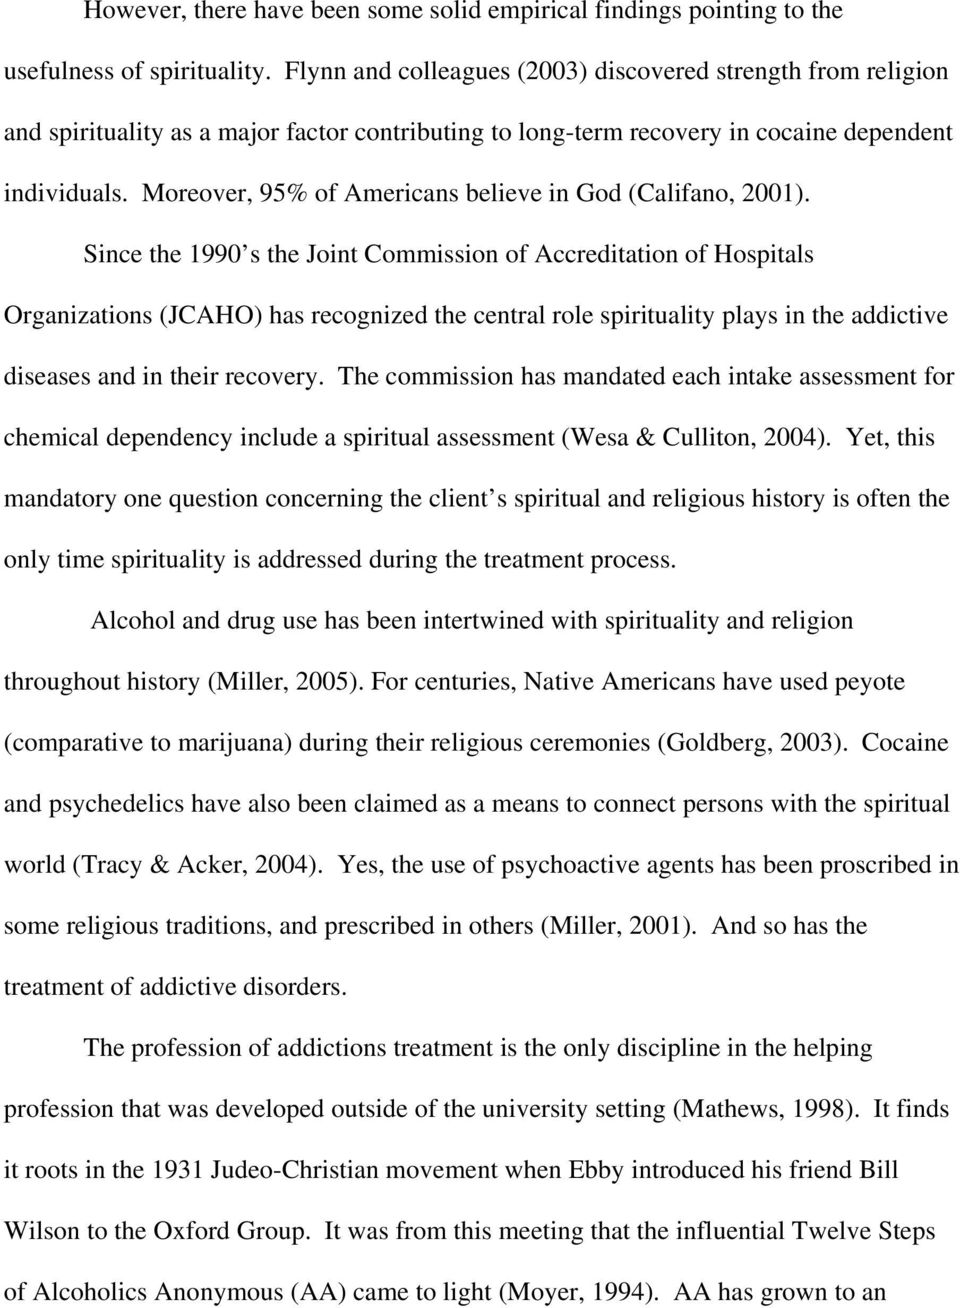 Moreover, 95% of Americans believe in God (Califano, 2001).